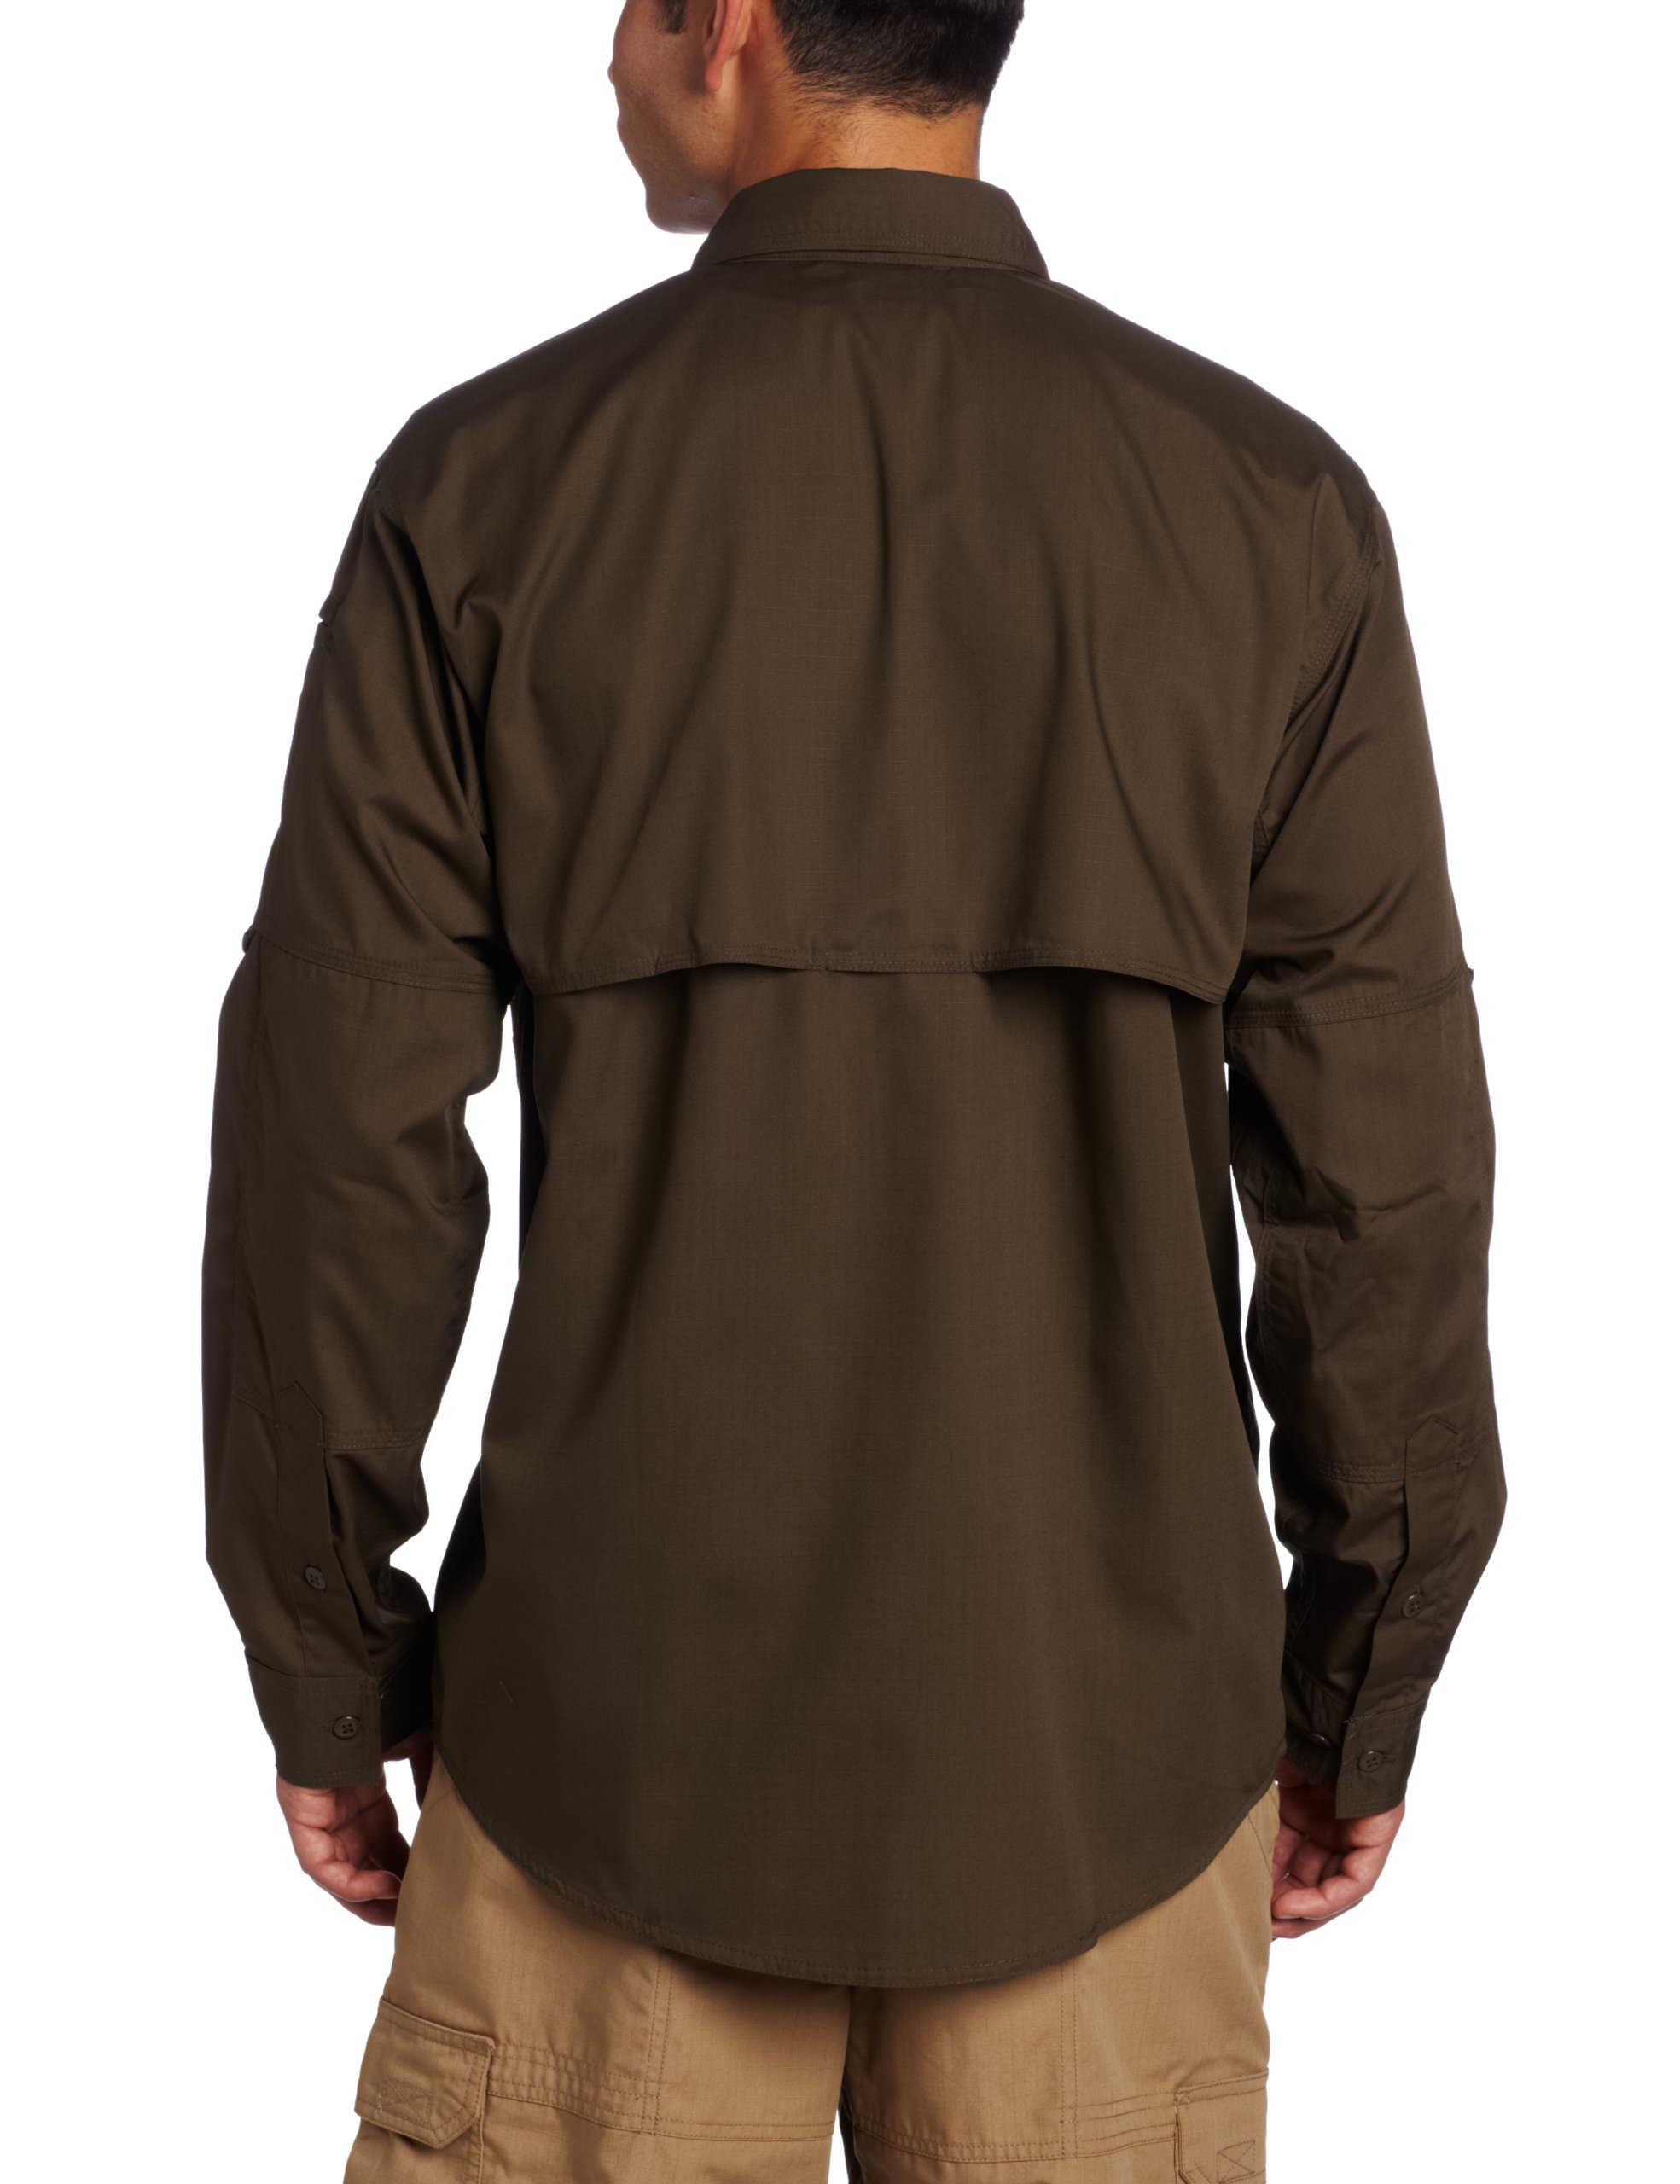 5.11 Tactical TacLite Professional Long Sleeve Shirt, Tundra, Large by 5.11 (Image #2)